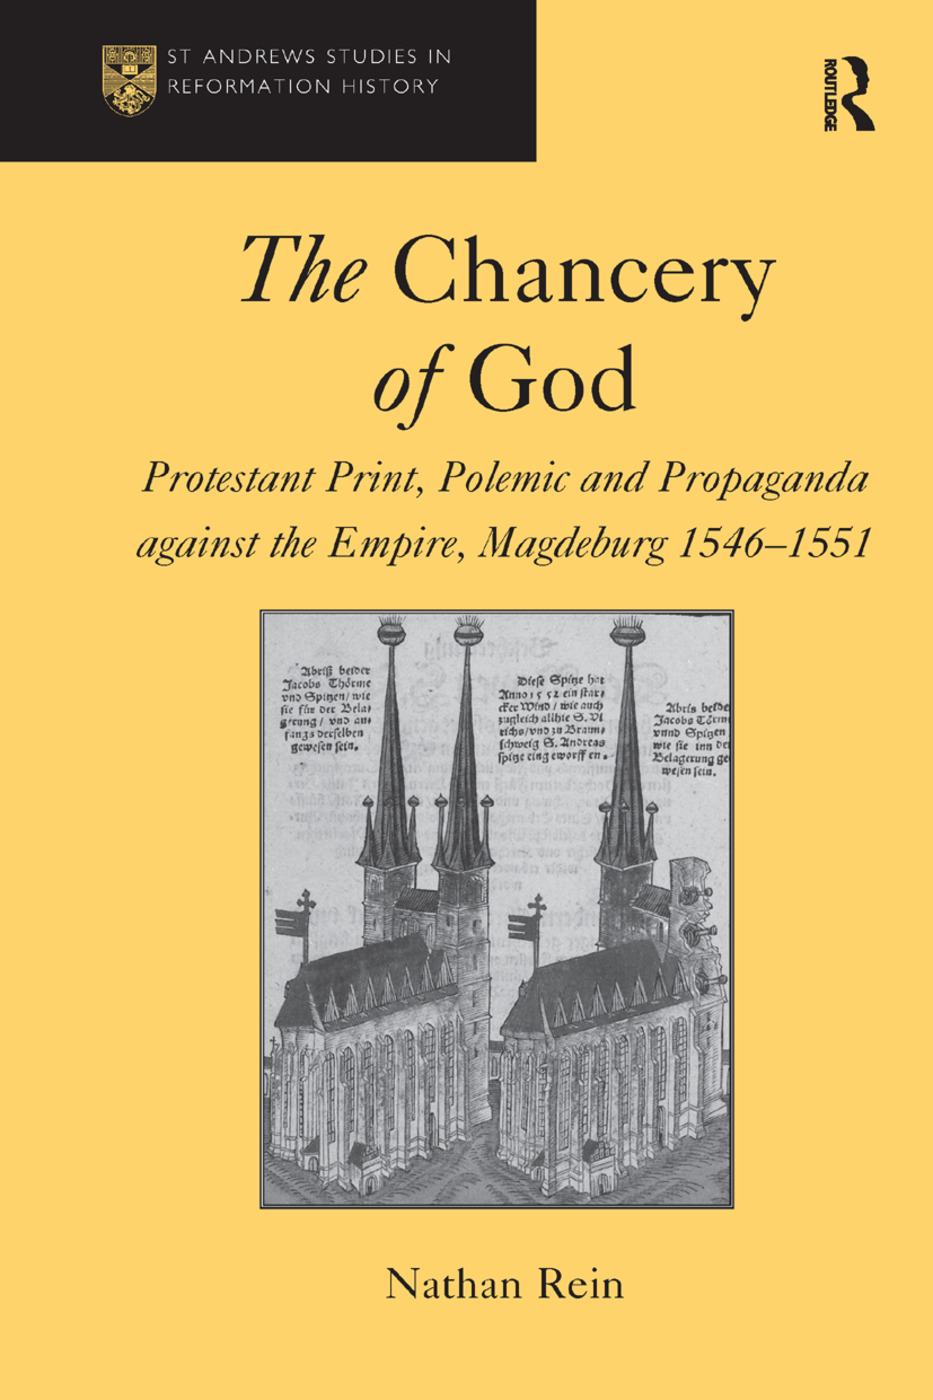 The Chancery of God: Protestant Print, Polemic and Propaganda against the Empire, Magdeburg 1546–1551 book cover